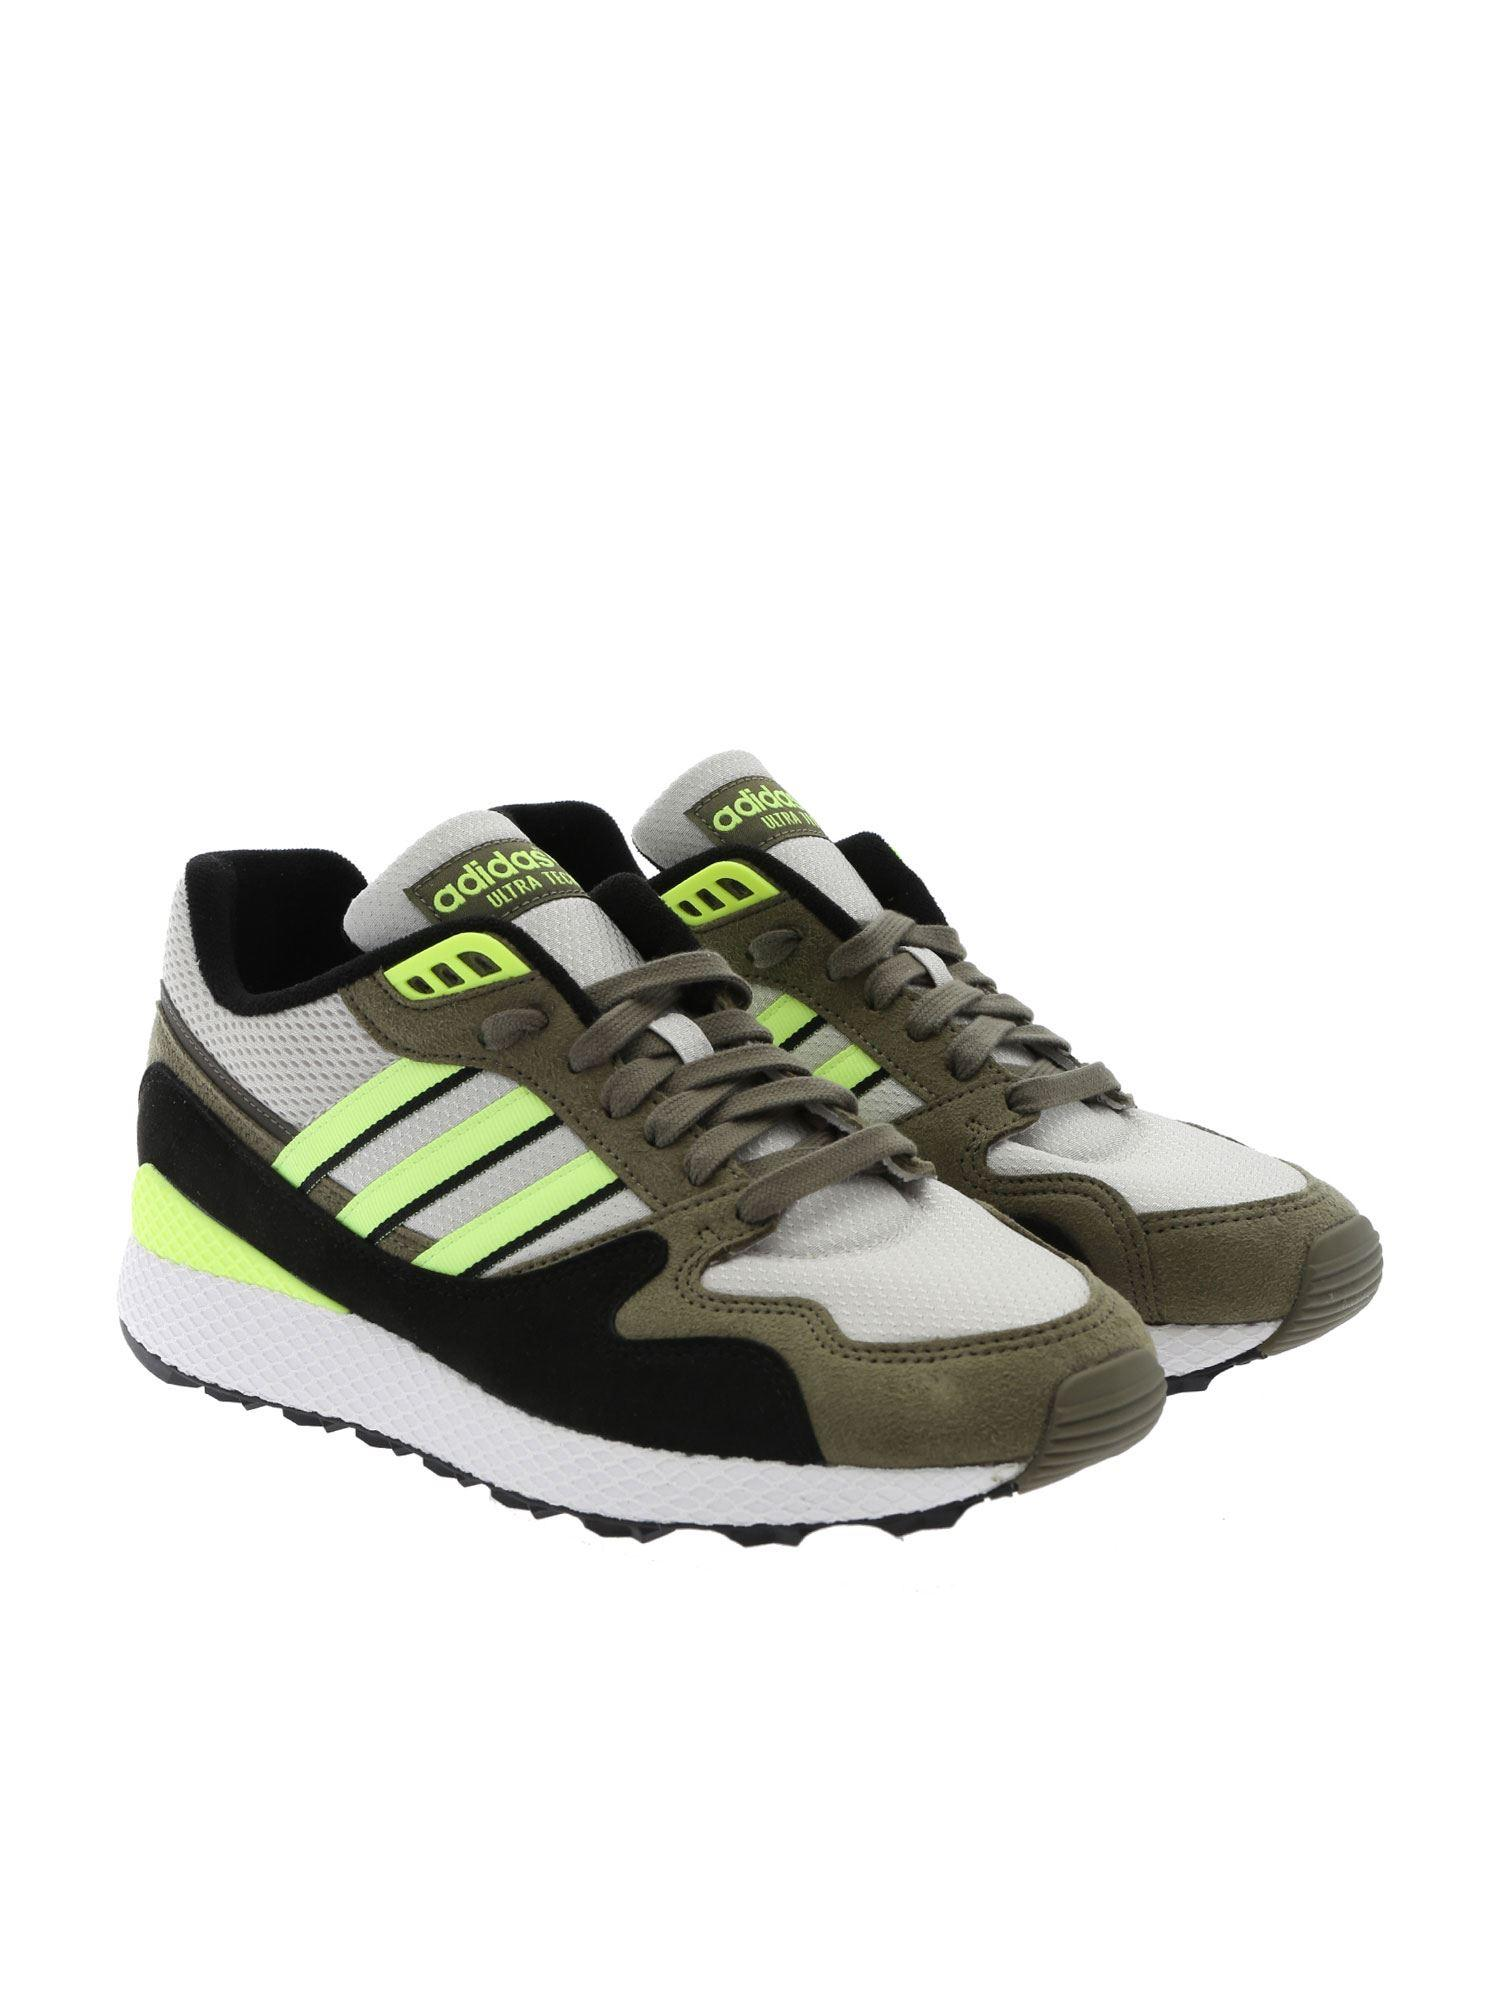 60f09b836b468 Lyst - adidas Originals Ultra Tech Sneakers In Green in Green for Men